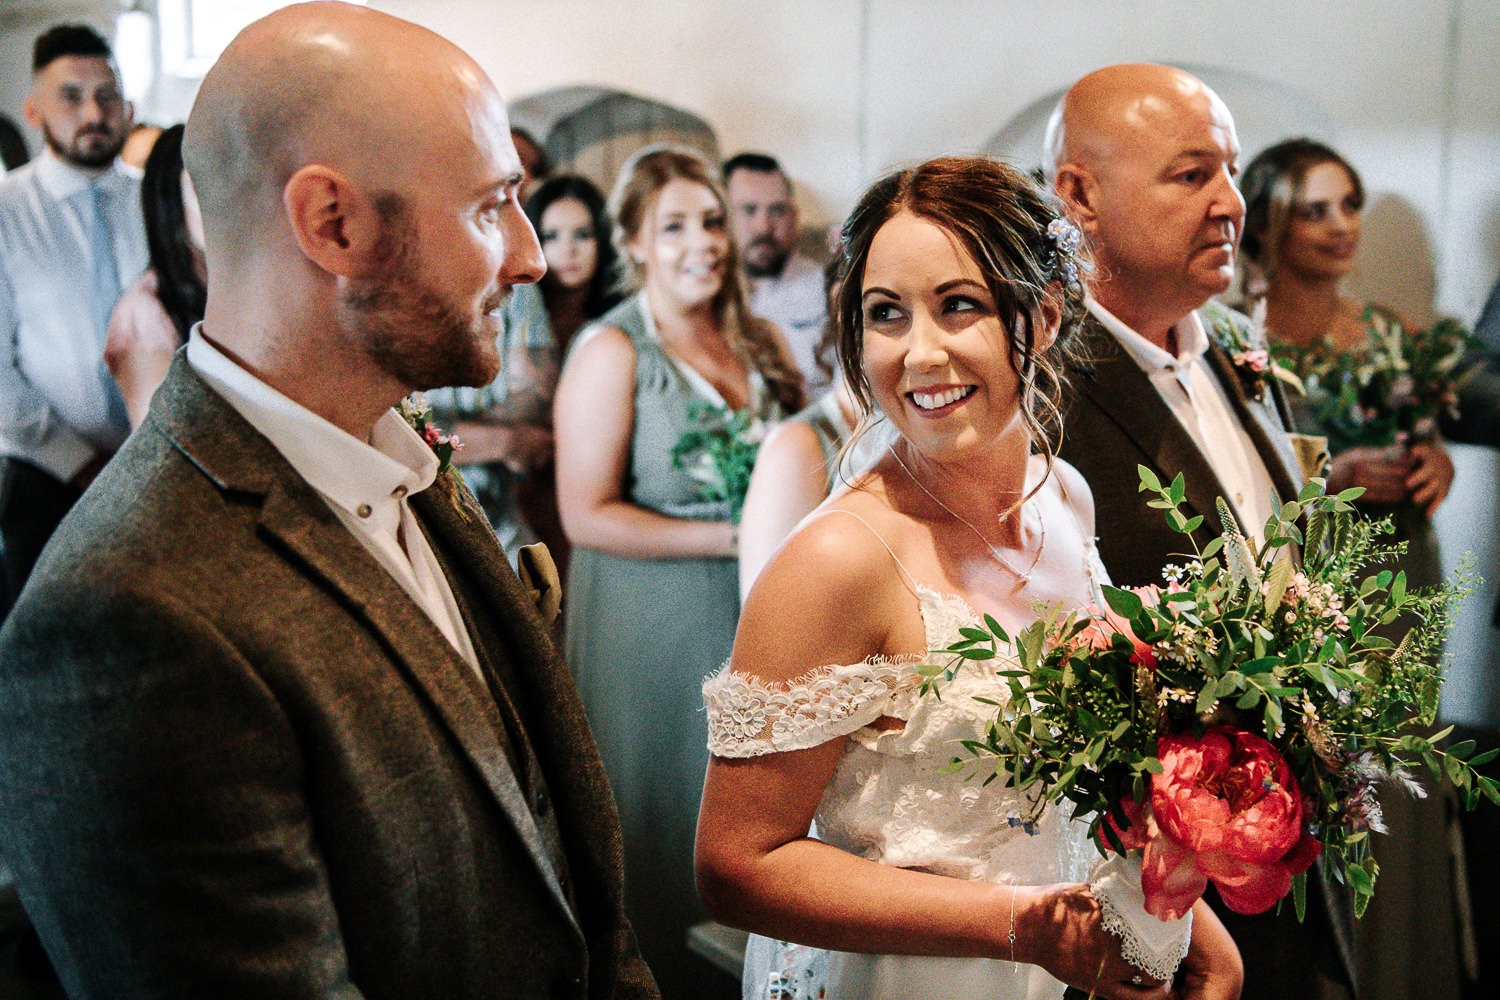 Bride seeing groom and smiling